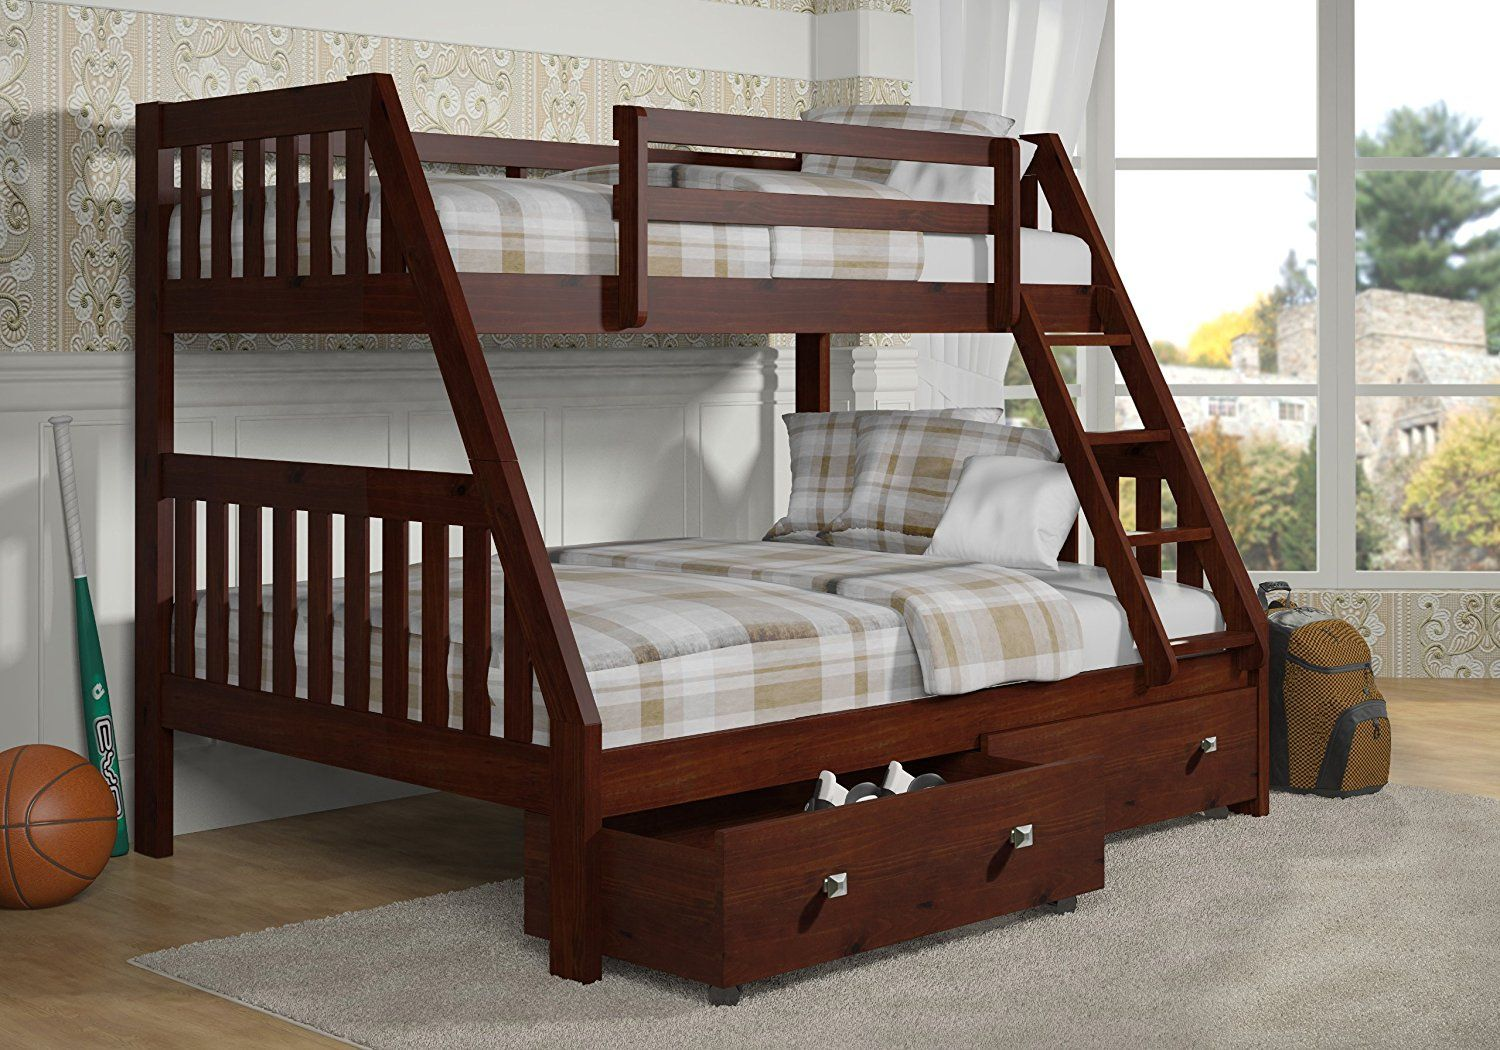 Twin Over Full Bunk Bed Wood - Best Paint for Interior Walls Check ...